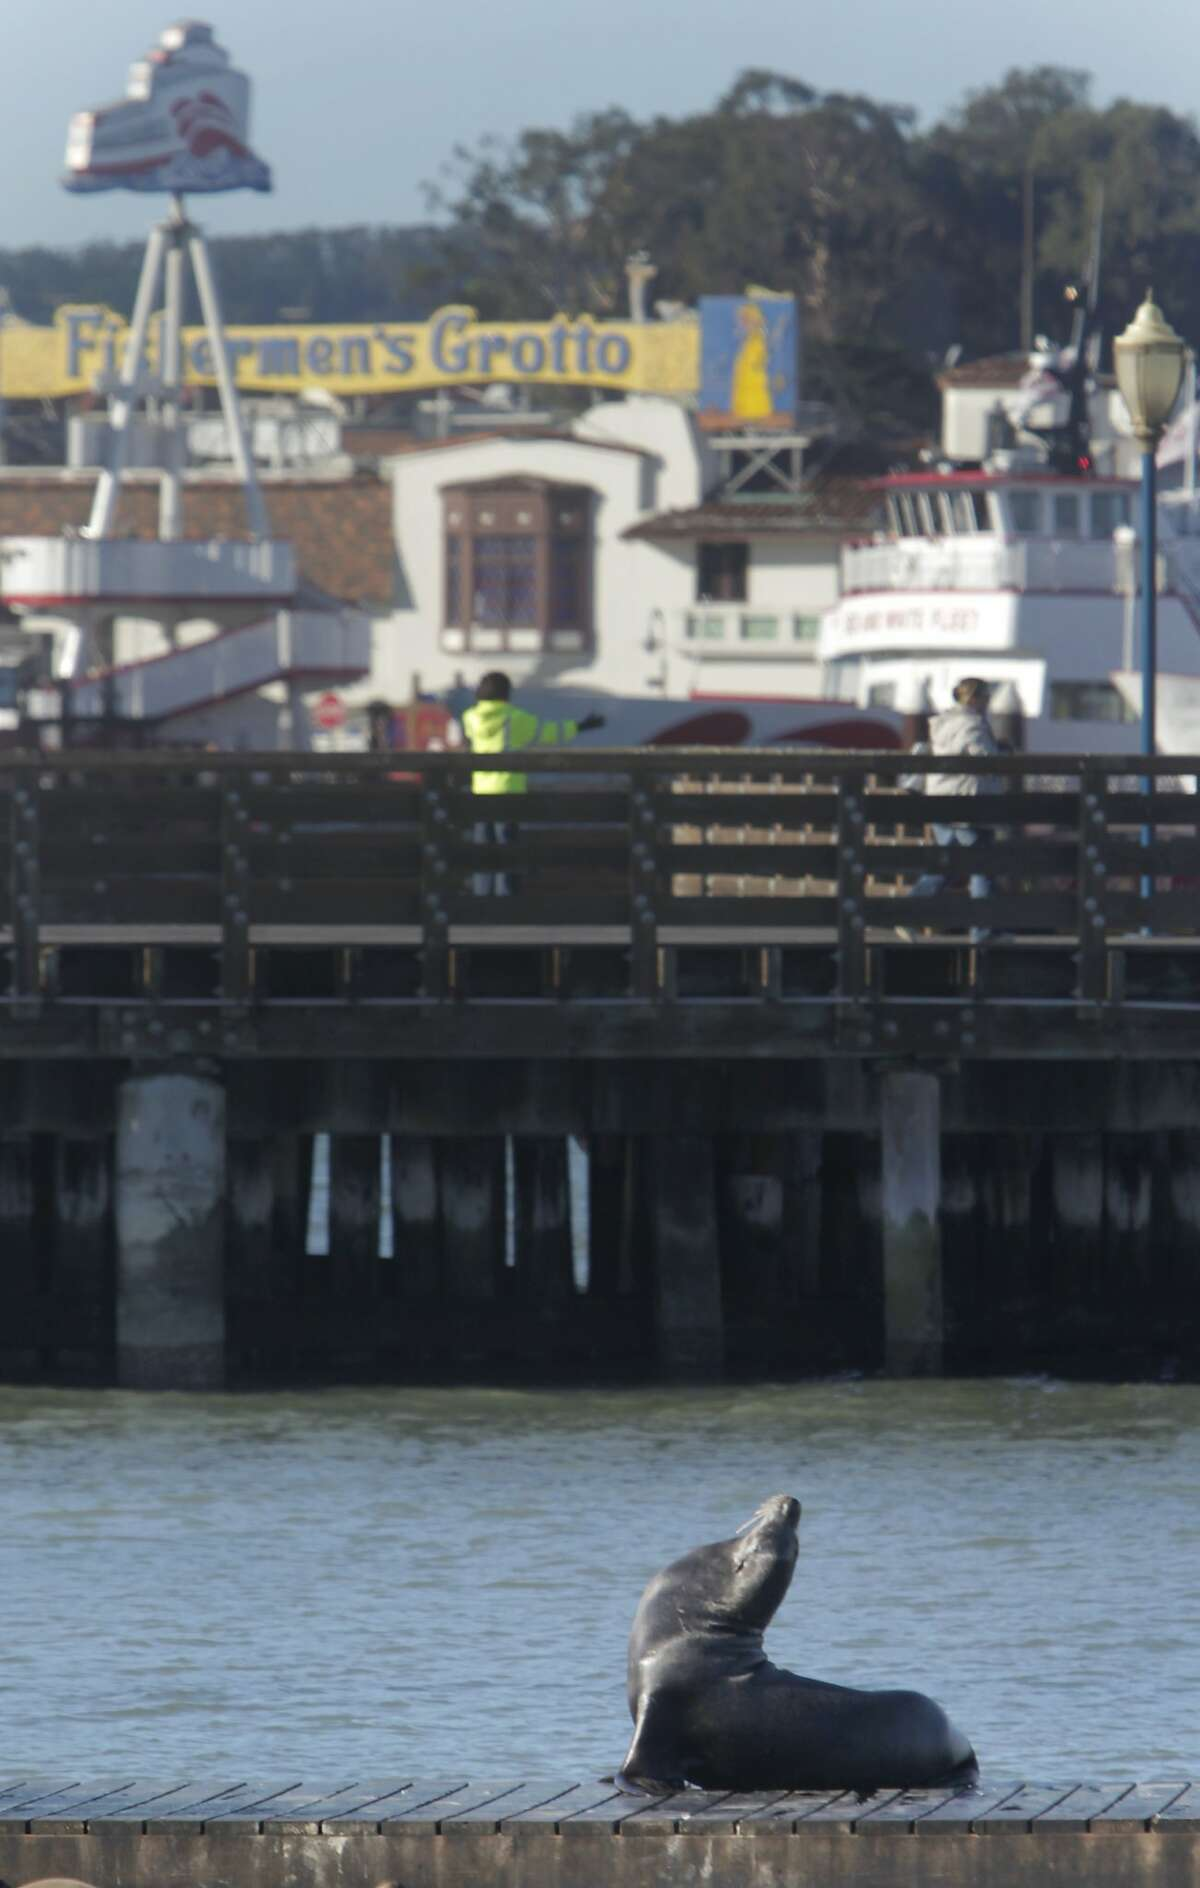 A sea lion basks in the sun on the dock at Pier 39 on Monday, December 14, 2015 in San Francisco, Calif.